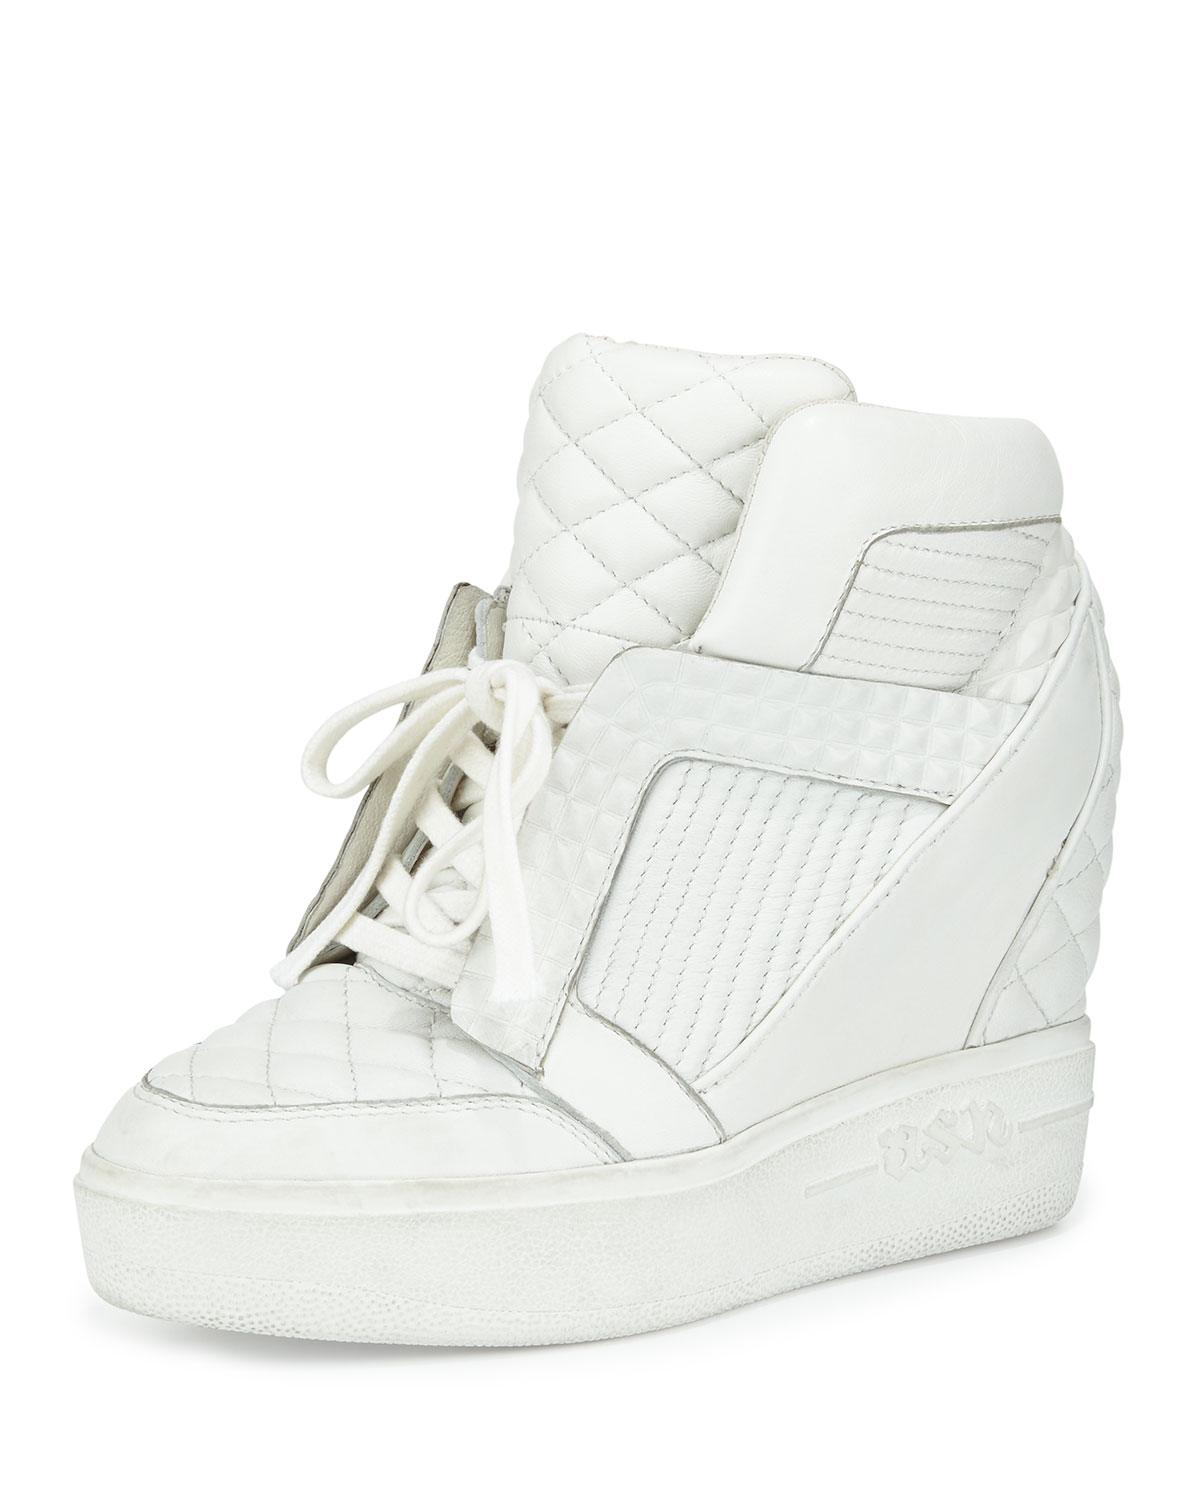 Lyst - Ash Azimut High-Top Wedge Sneakers in White f2658188a